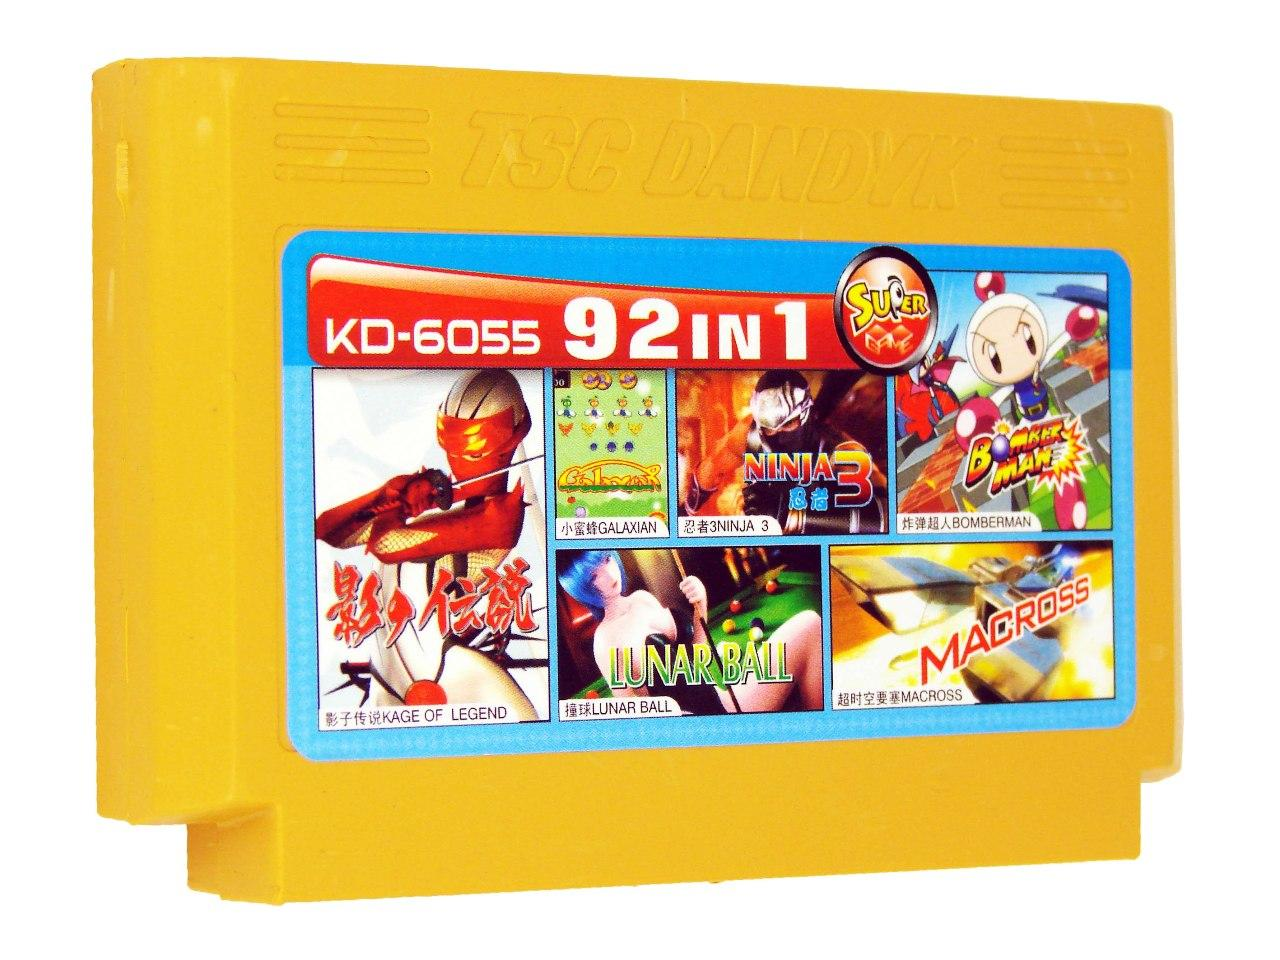 Картридж для Денди KD 6055 92 in 1 (Dendy), Legend of Kage, Galaxian, Lunar Ball, Ninja 3, BomberMan, Macross